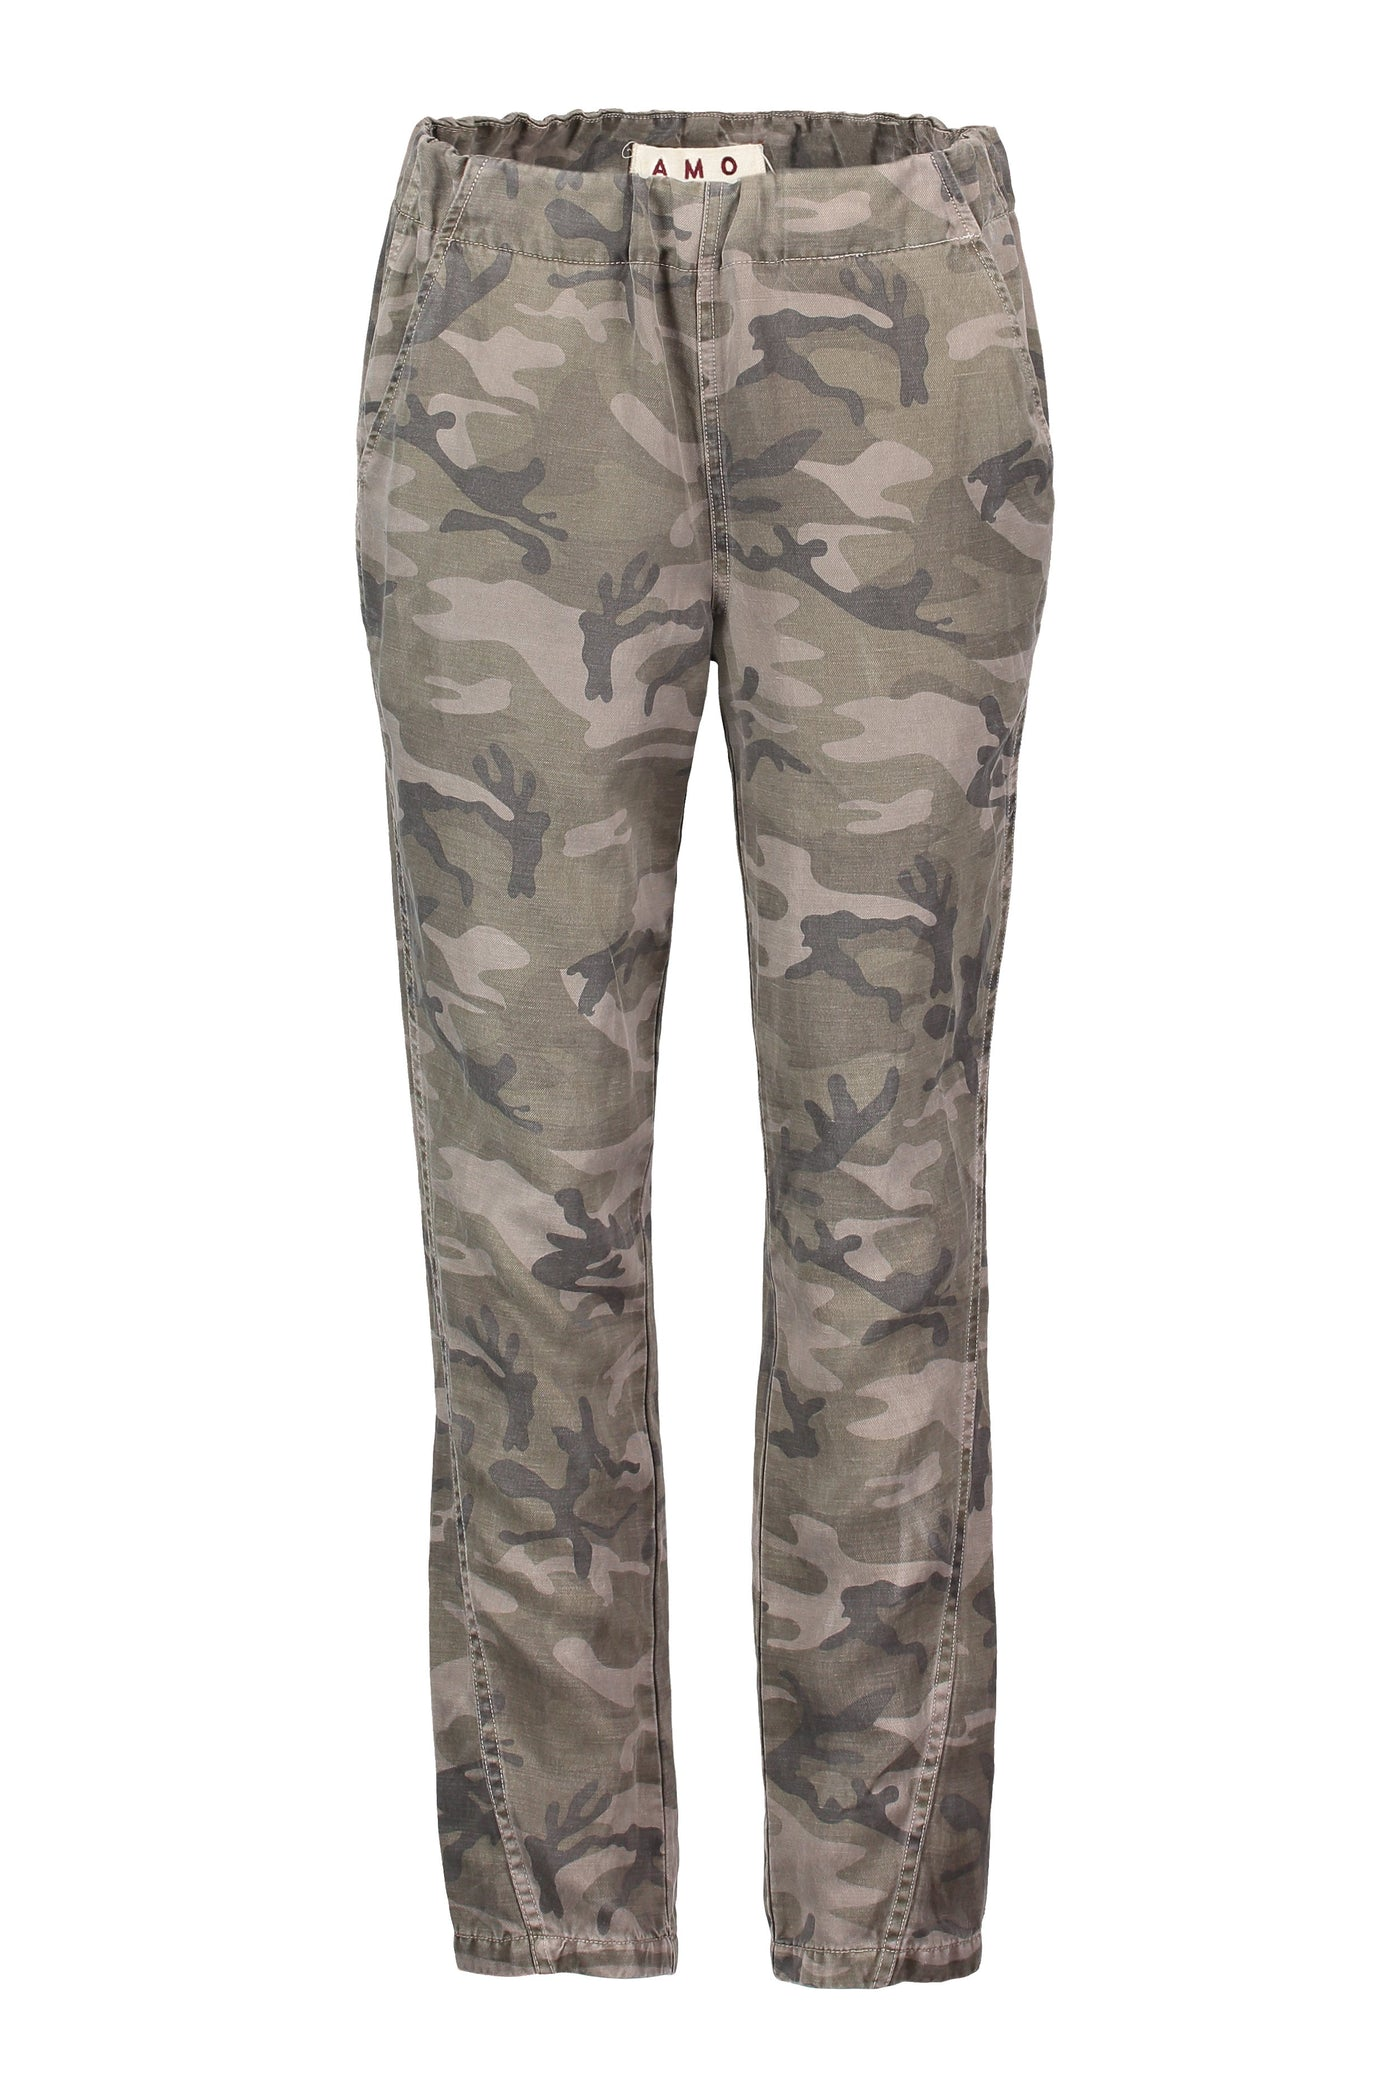 Pull-on Slouch Trouser <br> Warm Grey Camo <br> *Final Sale*